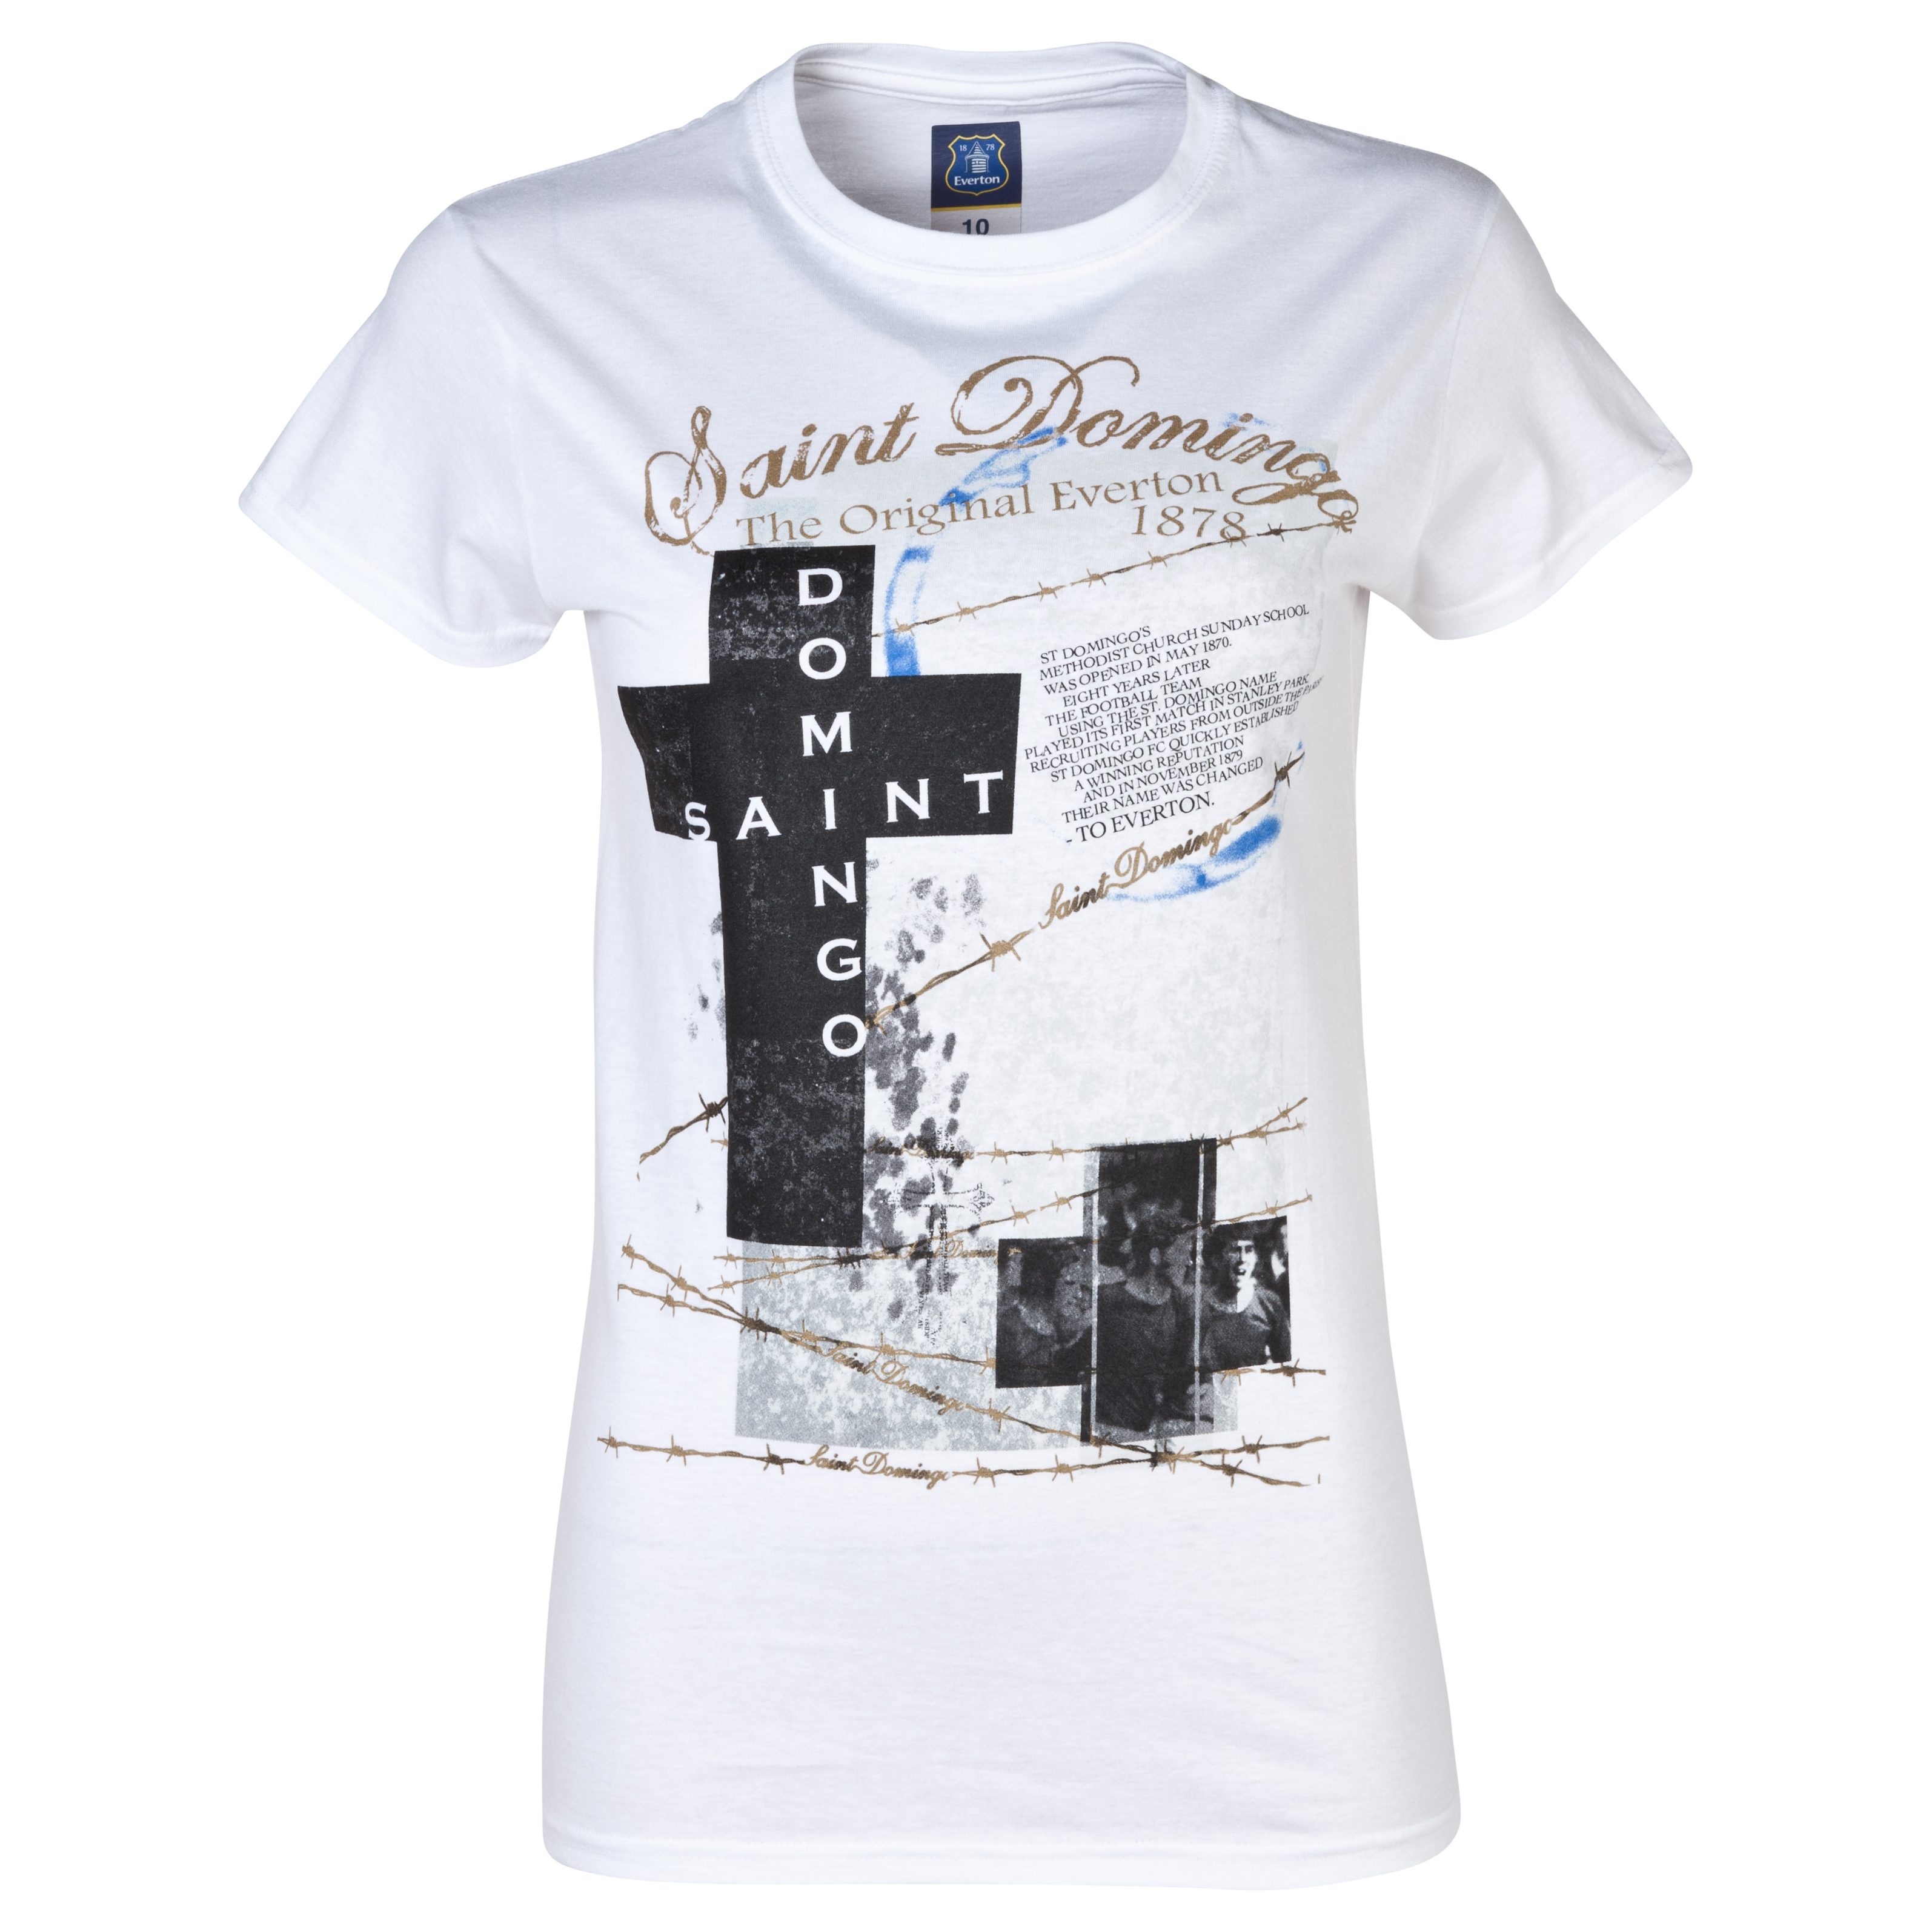 Everton 2for20 Saint Domingo T-Shirt - Womens White